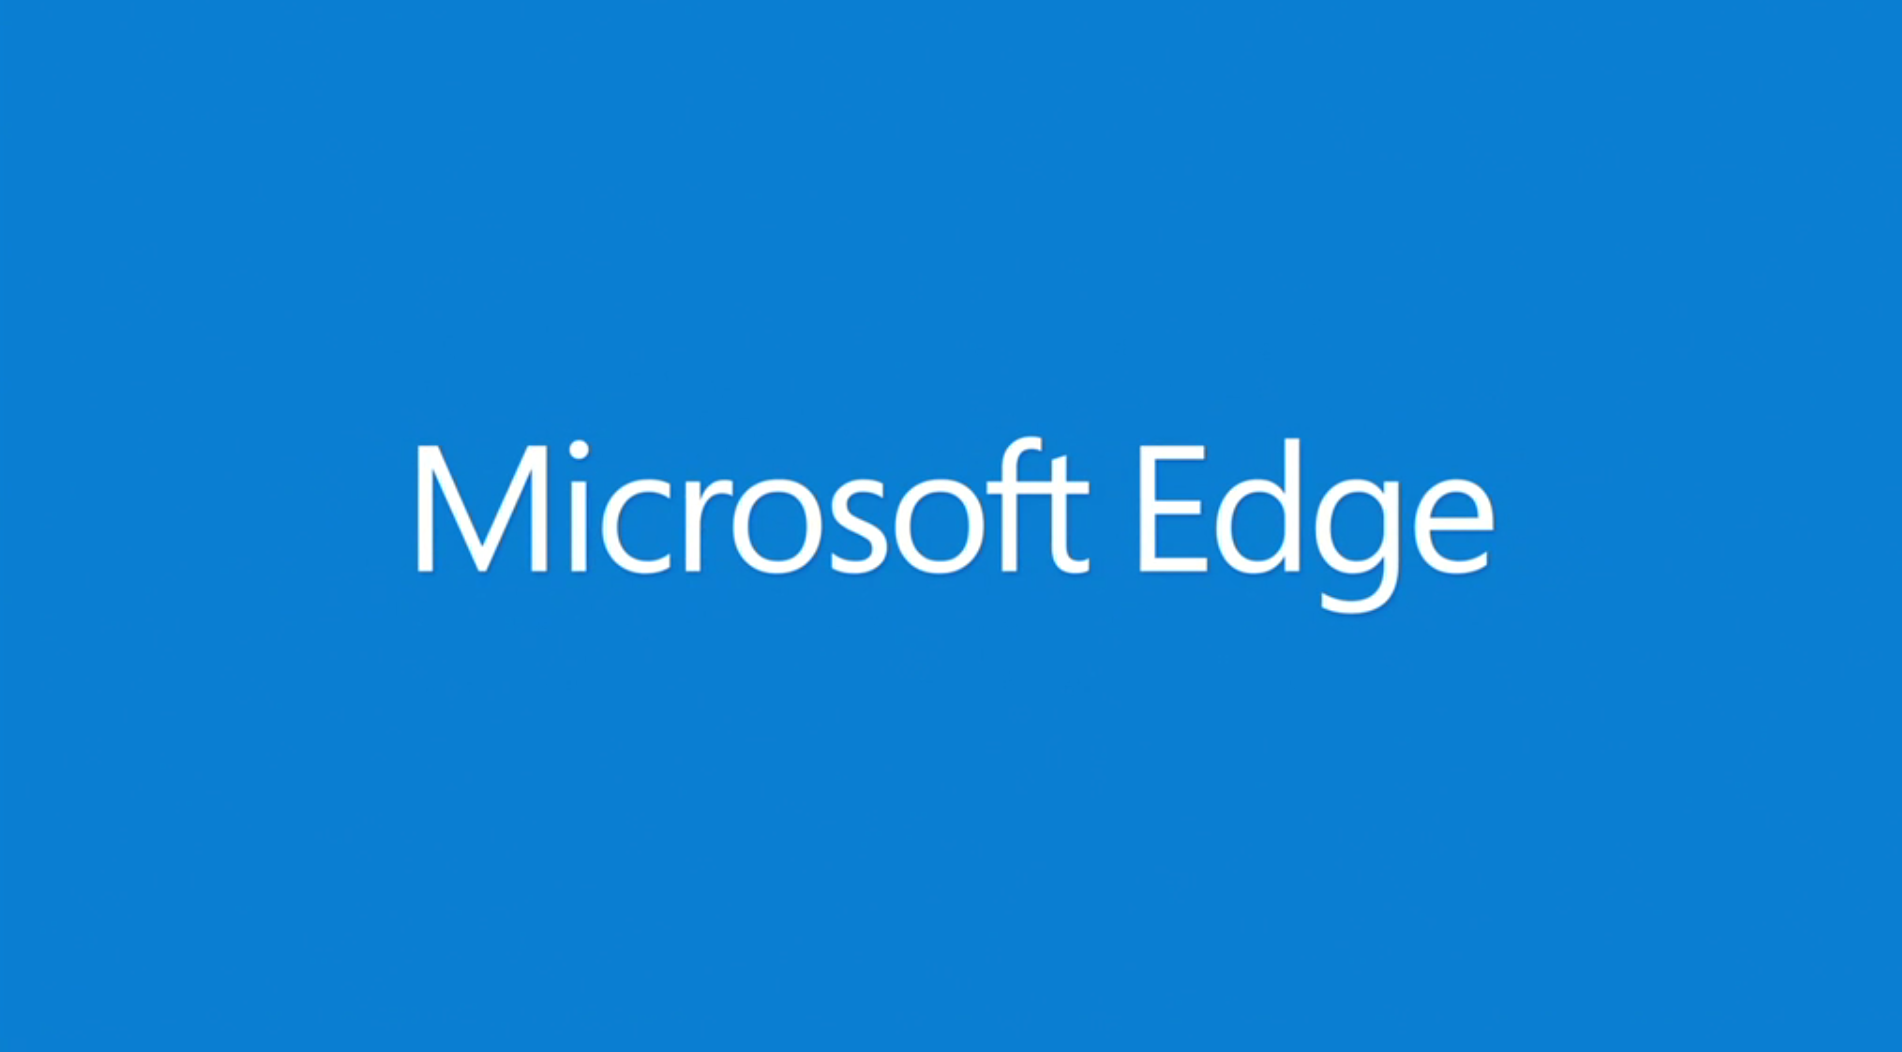 Project Spartan's Name Is Finally Revealed: Microsoft Edge